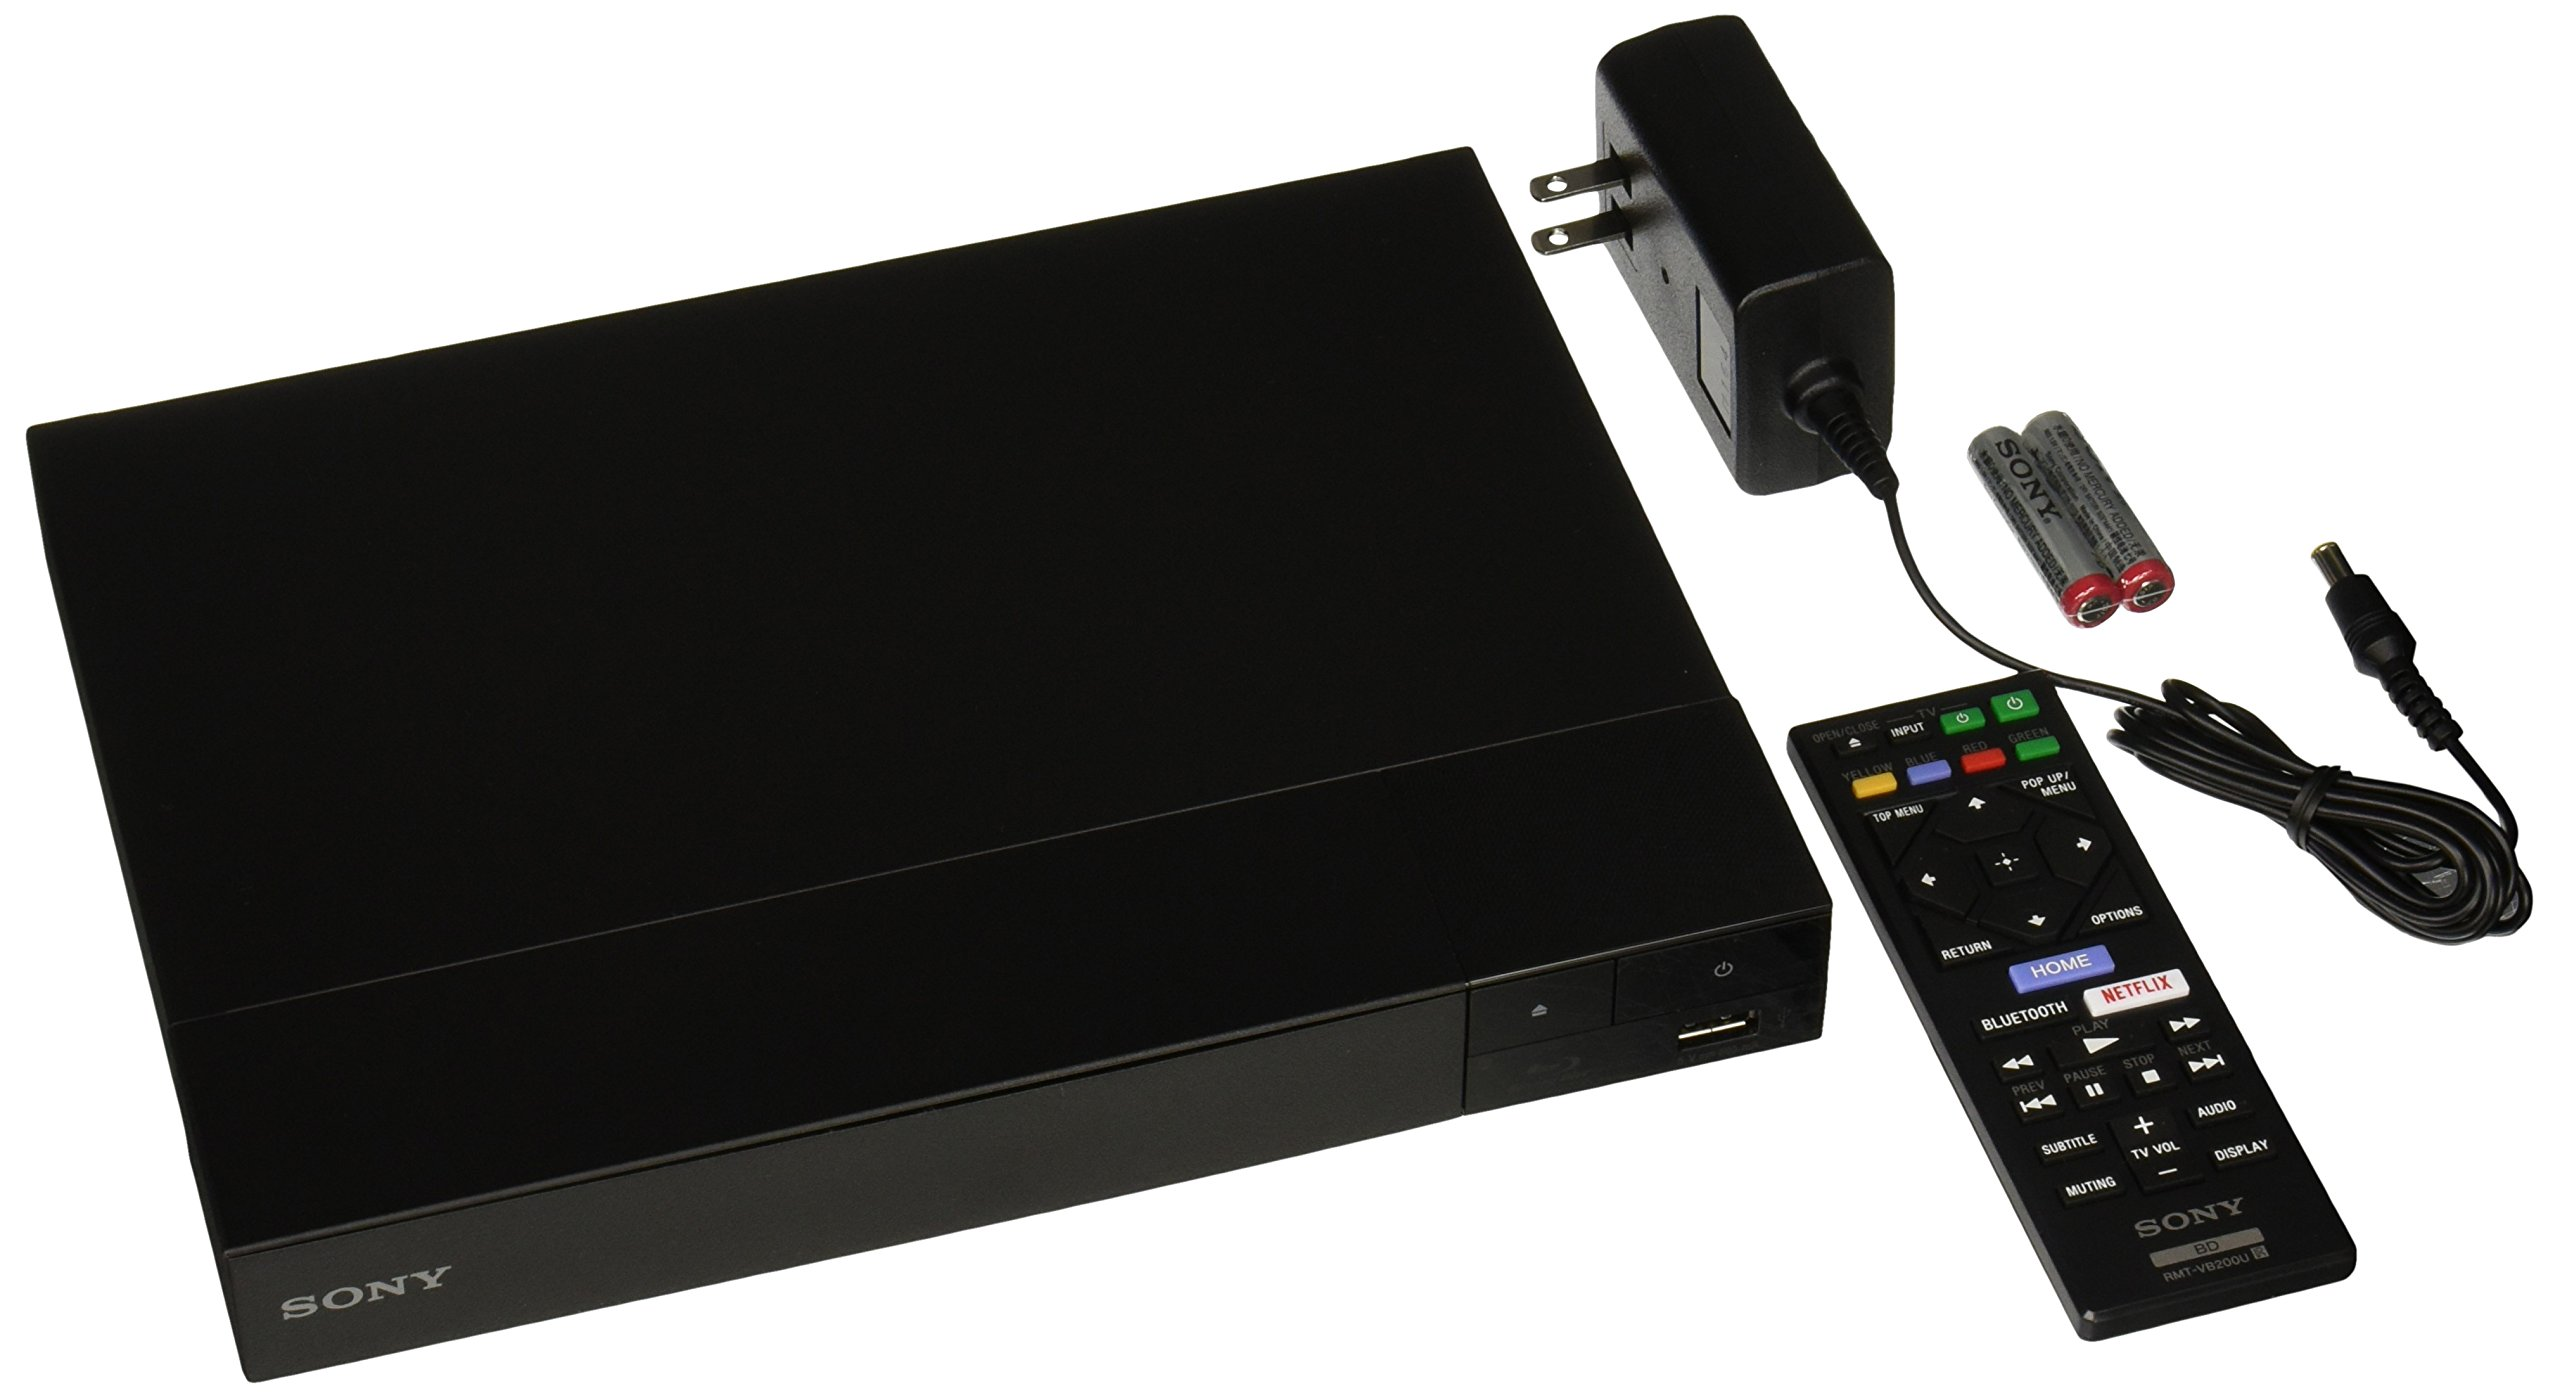 SONY BDP-S6700 2k/4k Upscaling - Bluetooth- 2D/3D - Wi-Fi - Multi System Region Free Blu Ray Disc DVD Player by Sony